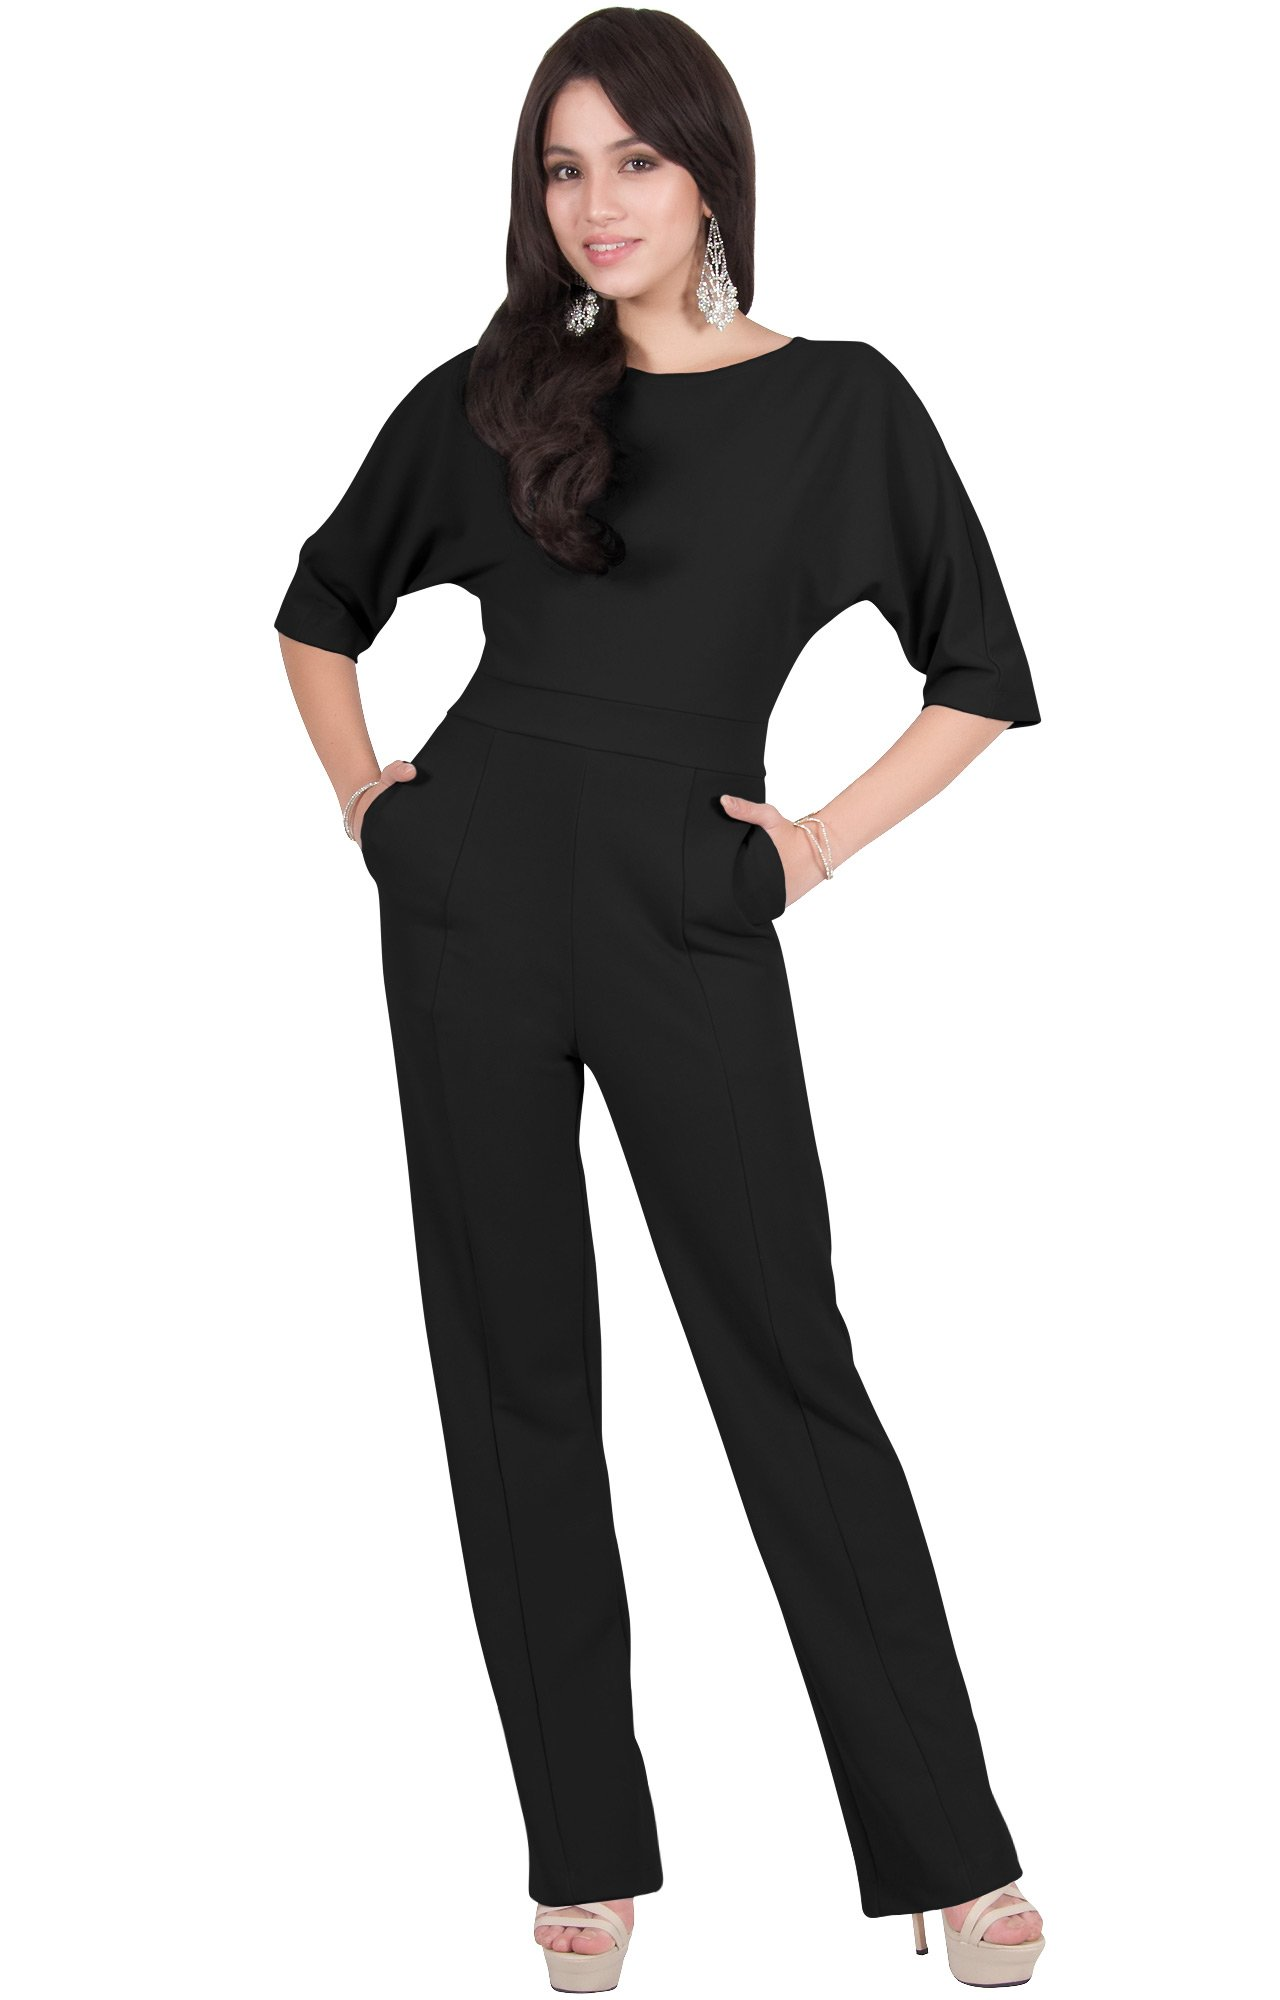 Viris Zamara Womens Long Round Neck Batwing Short Sleeve Sexy Formal Cocktail Casual Long Pants One Piece Pockets Dressy Pant Suit Suits Outfit Playsuit Romper Jumpsuit, Black L 12-14